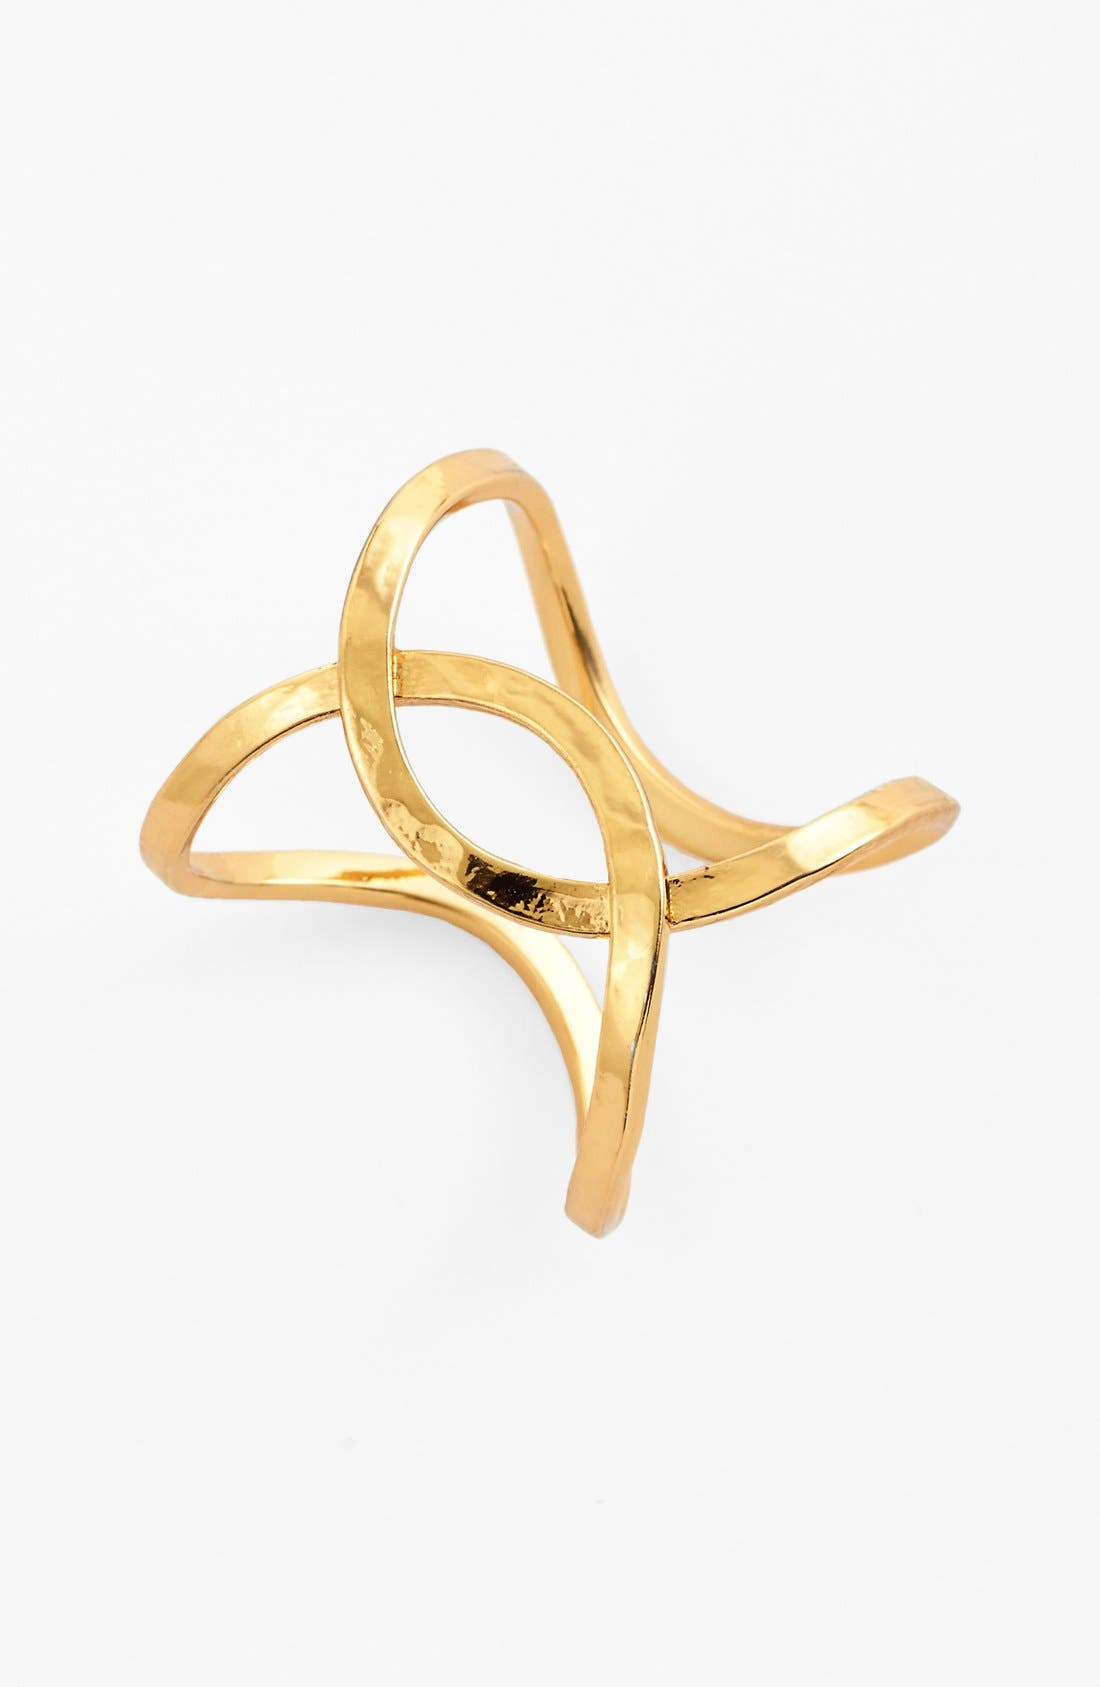 Main Image - gorjana 'Taner' Interlocking Ring